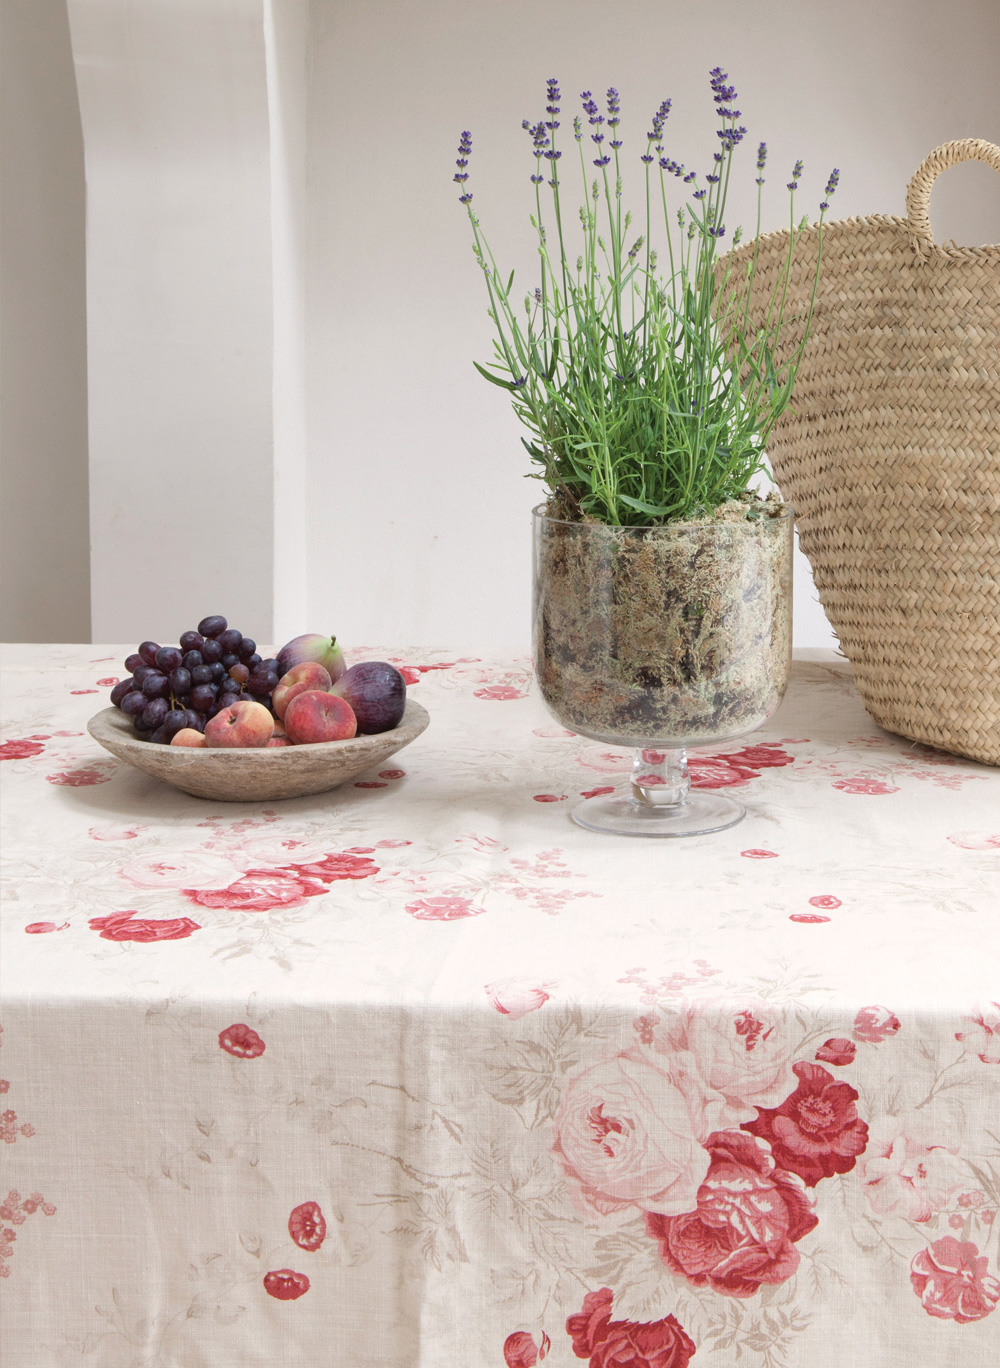 Roses-Tablecloth-Close-Up